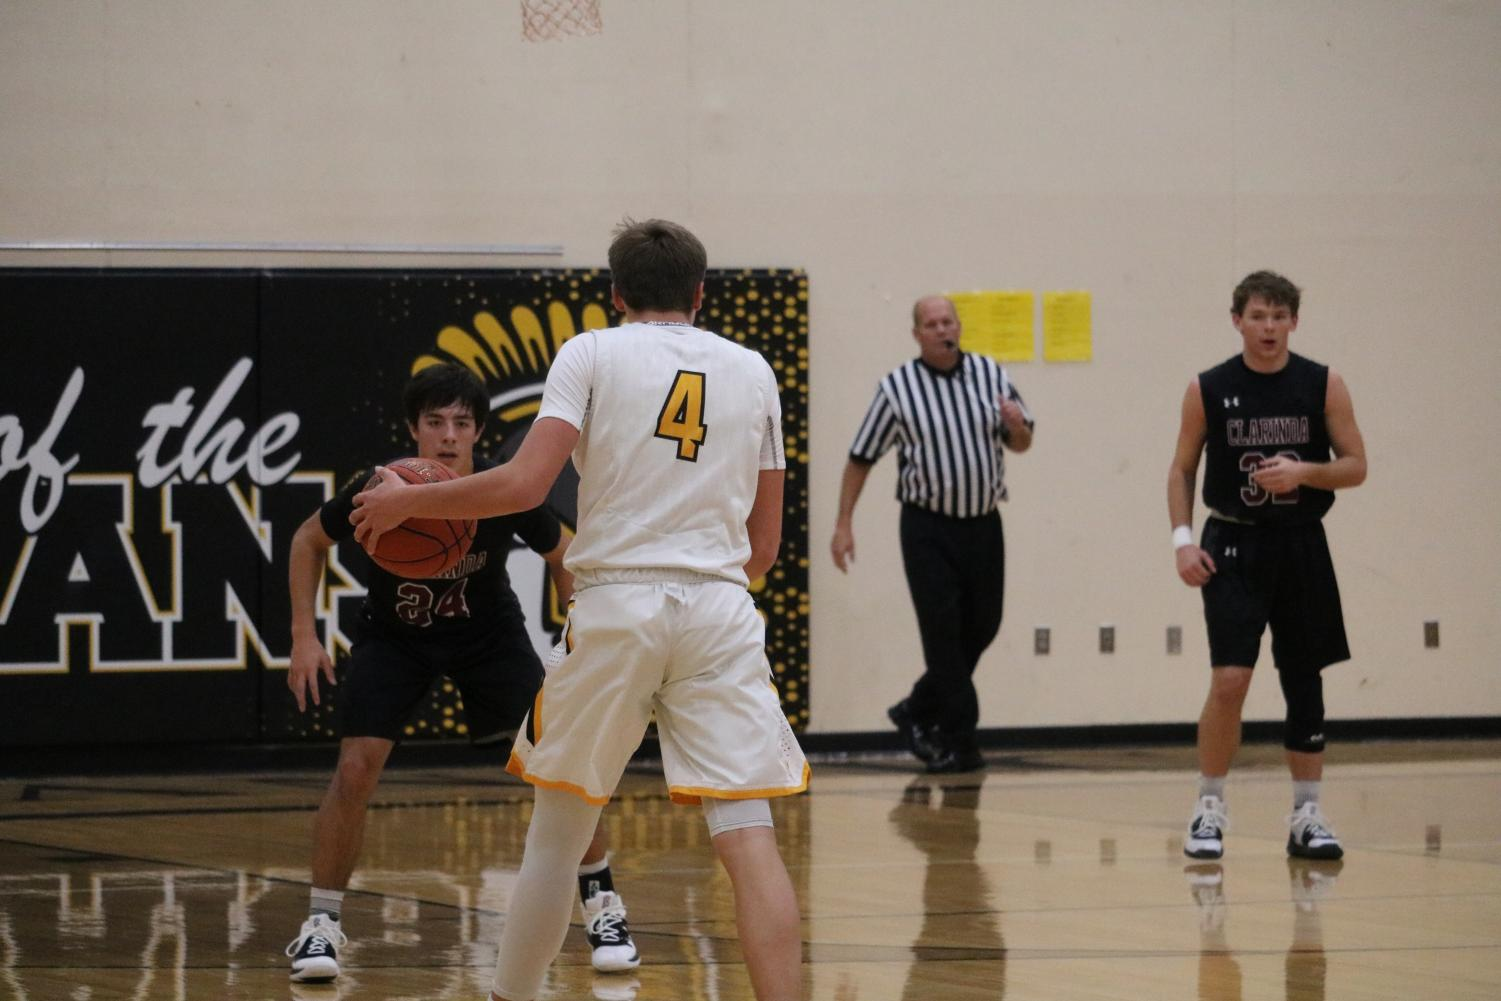 Junior Skyler Handlos waits for a play to open up on the home court. Handlos leads the team in scoring, averaging 16.8 points per game.